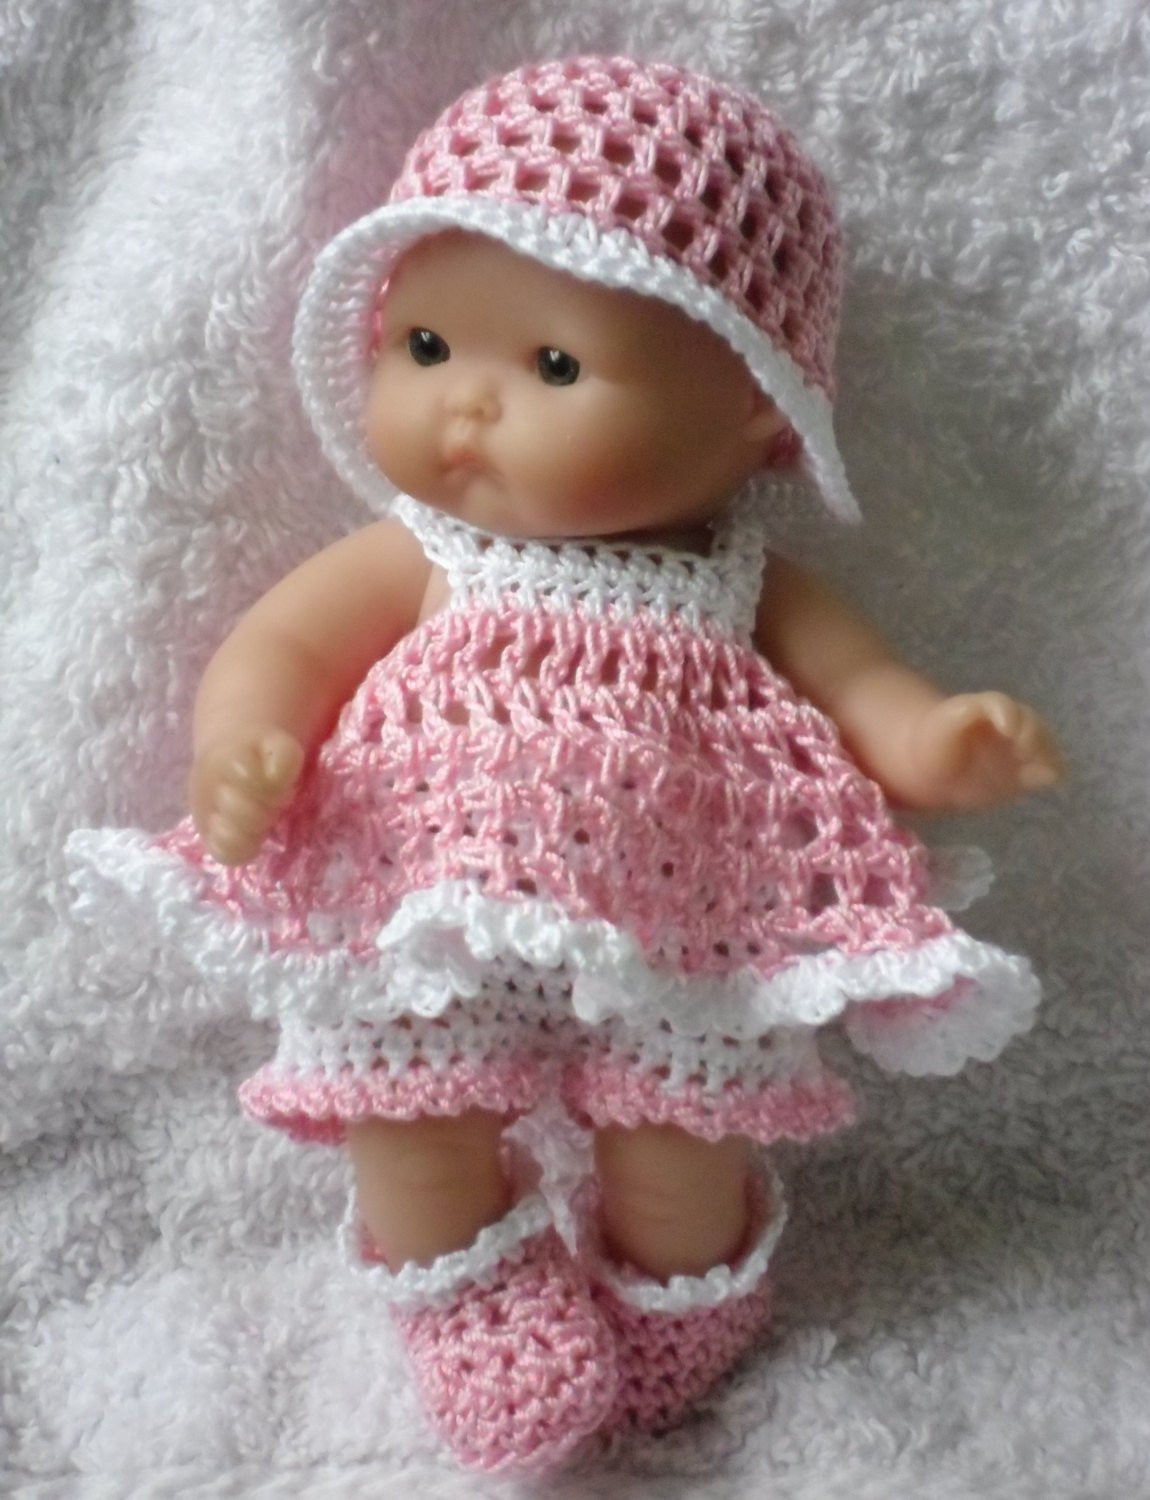 Crochet Doll Dress Awesome Crochet Pattern for Berenguer 5 Inch Baby Doll Dress Of Unique 43 Pictures Crochet Doll Dress